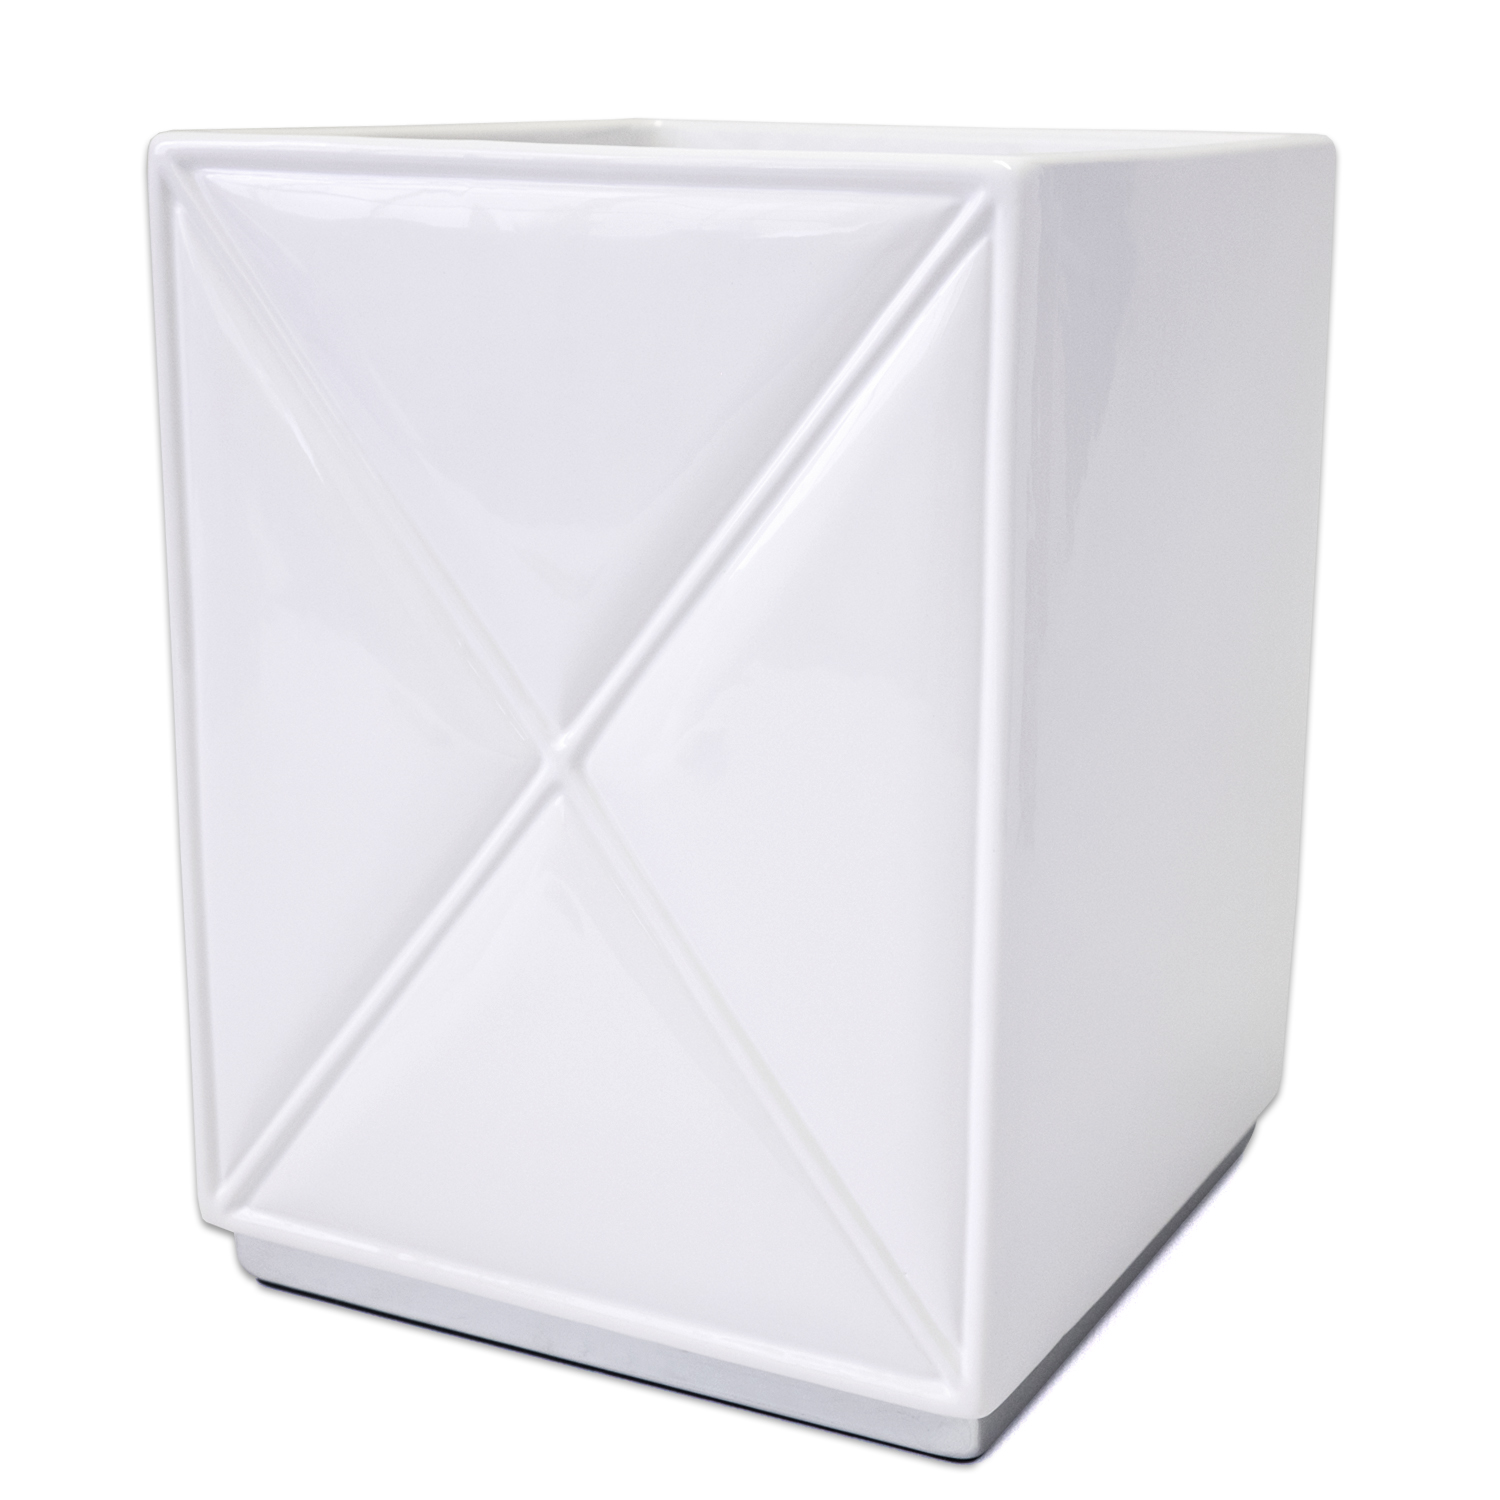 Popular Bath Quilt Accessory Collection White Chrome Ceramic Wastebasket by Popular Bath Products